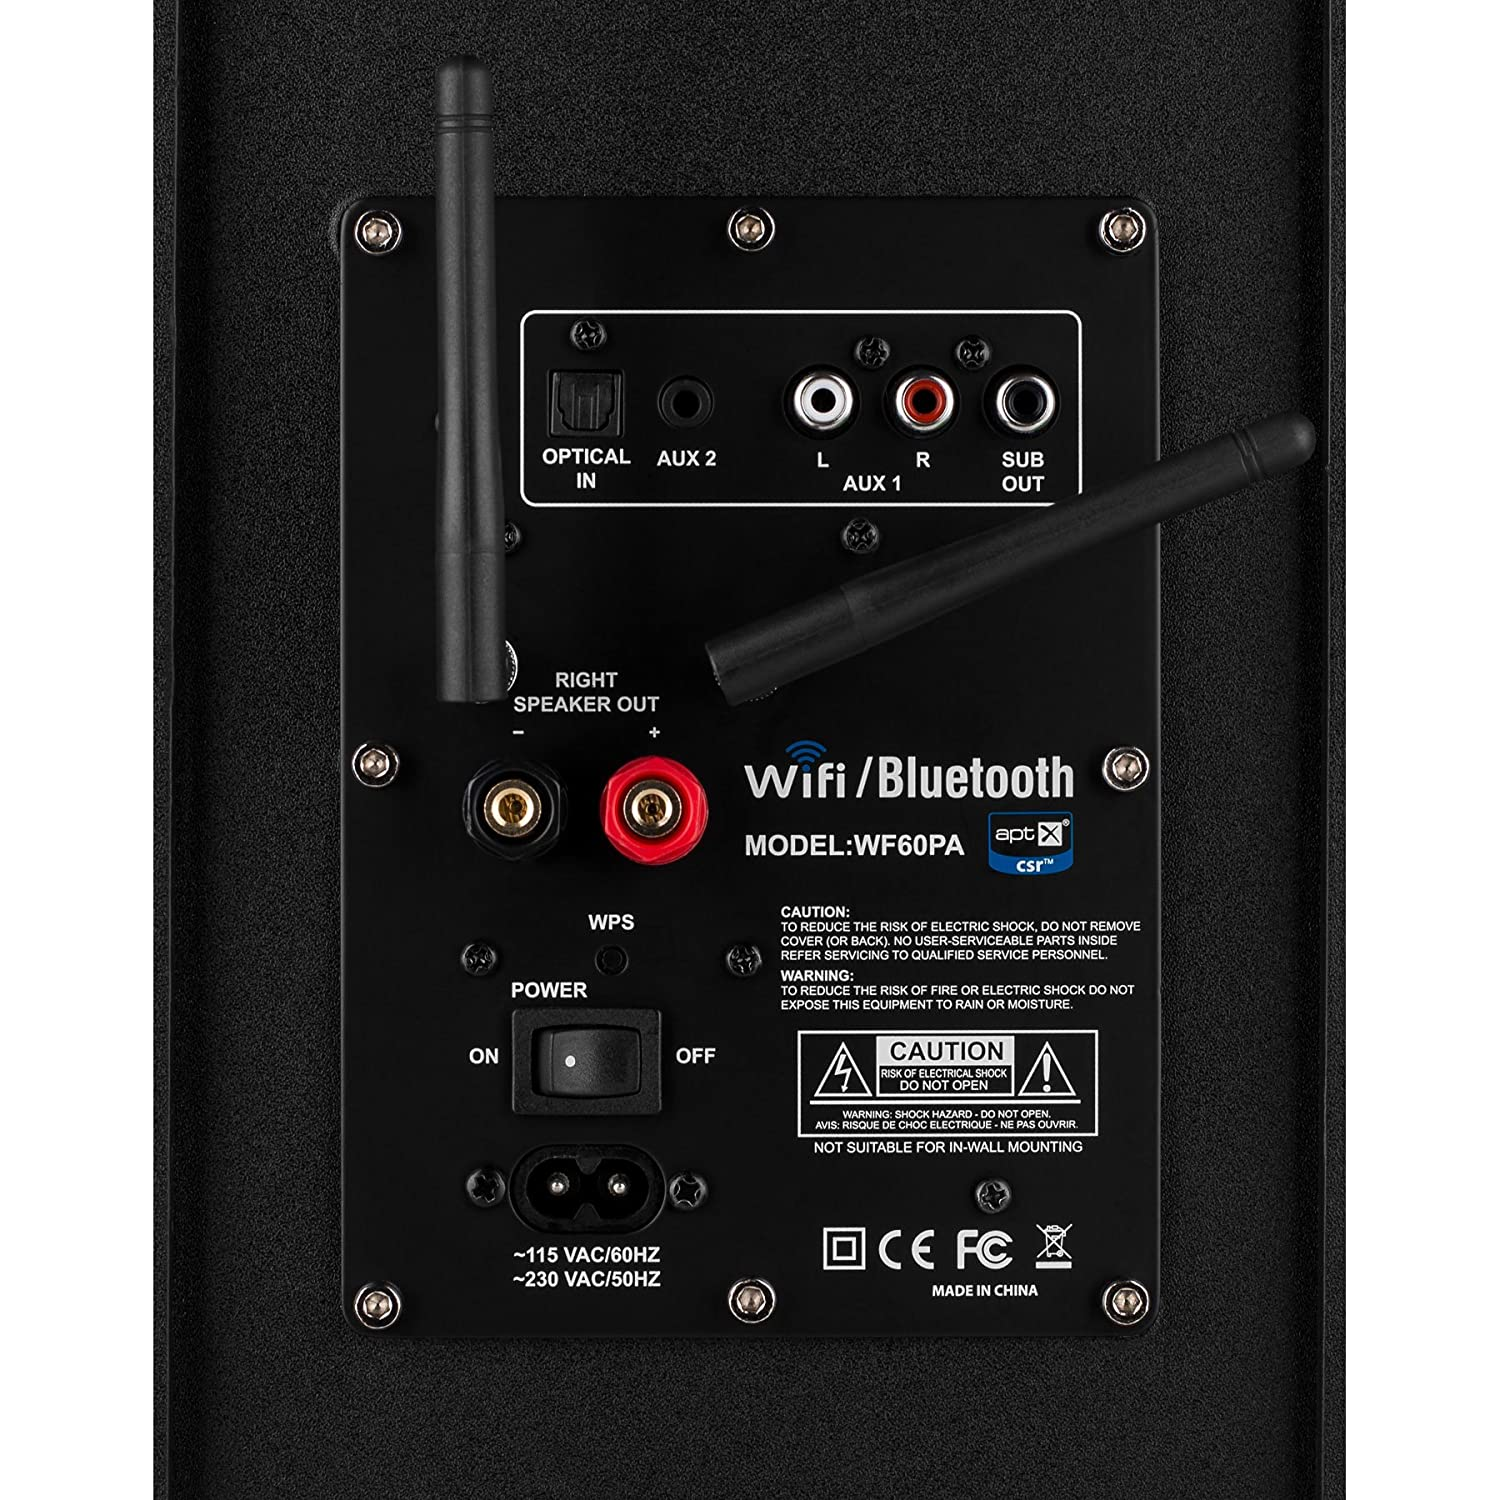 Dayton Audio WF60PA 60W Class D Full Range 2.1 Plate Amplifier with Wi-Fi and Bluetooth 4.0 aptX: Amazon.es: Electrónica